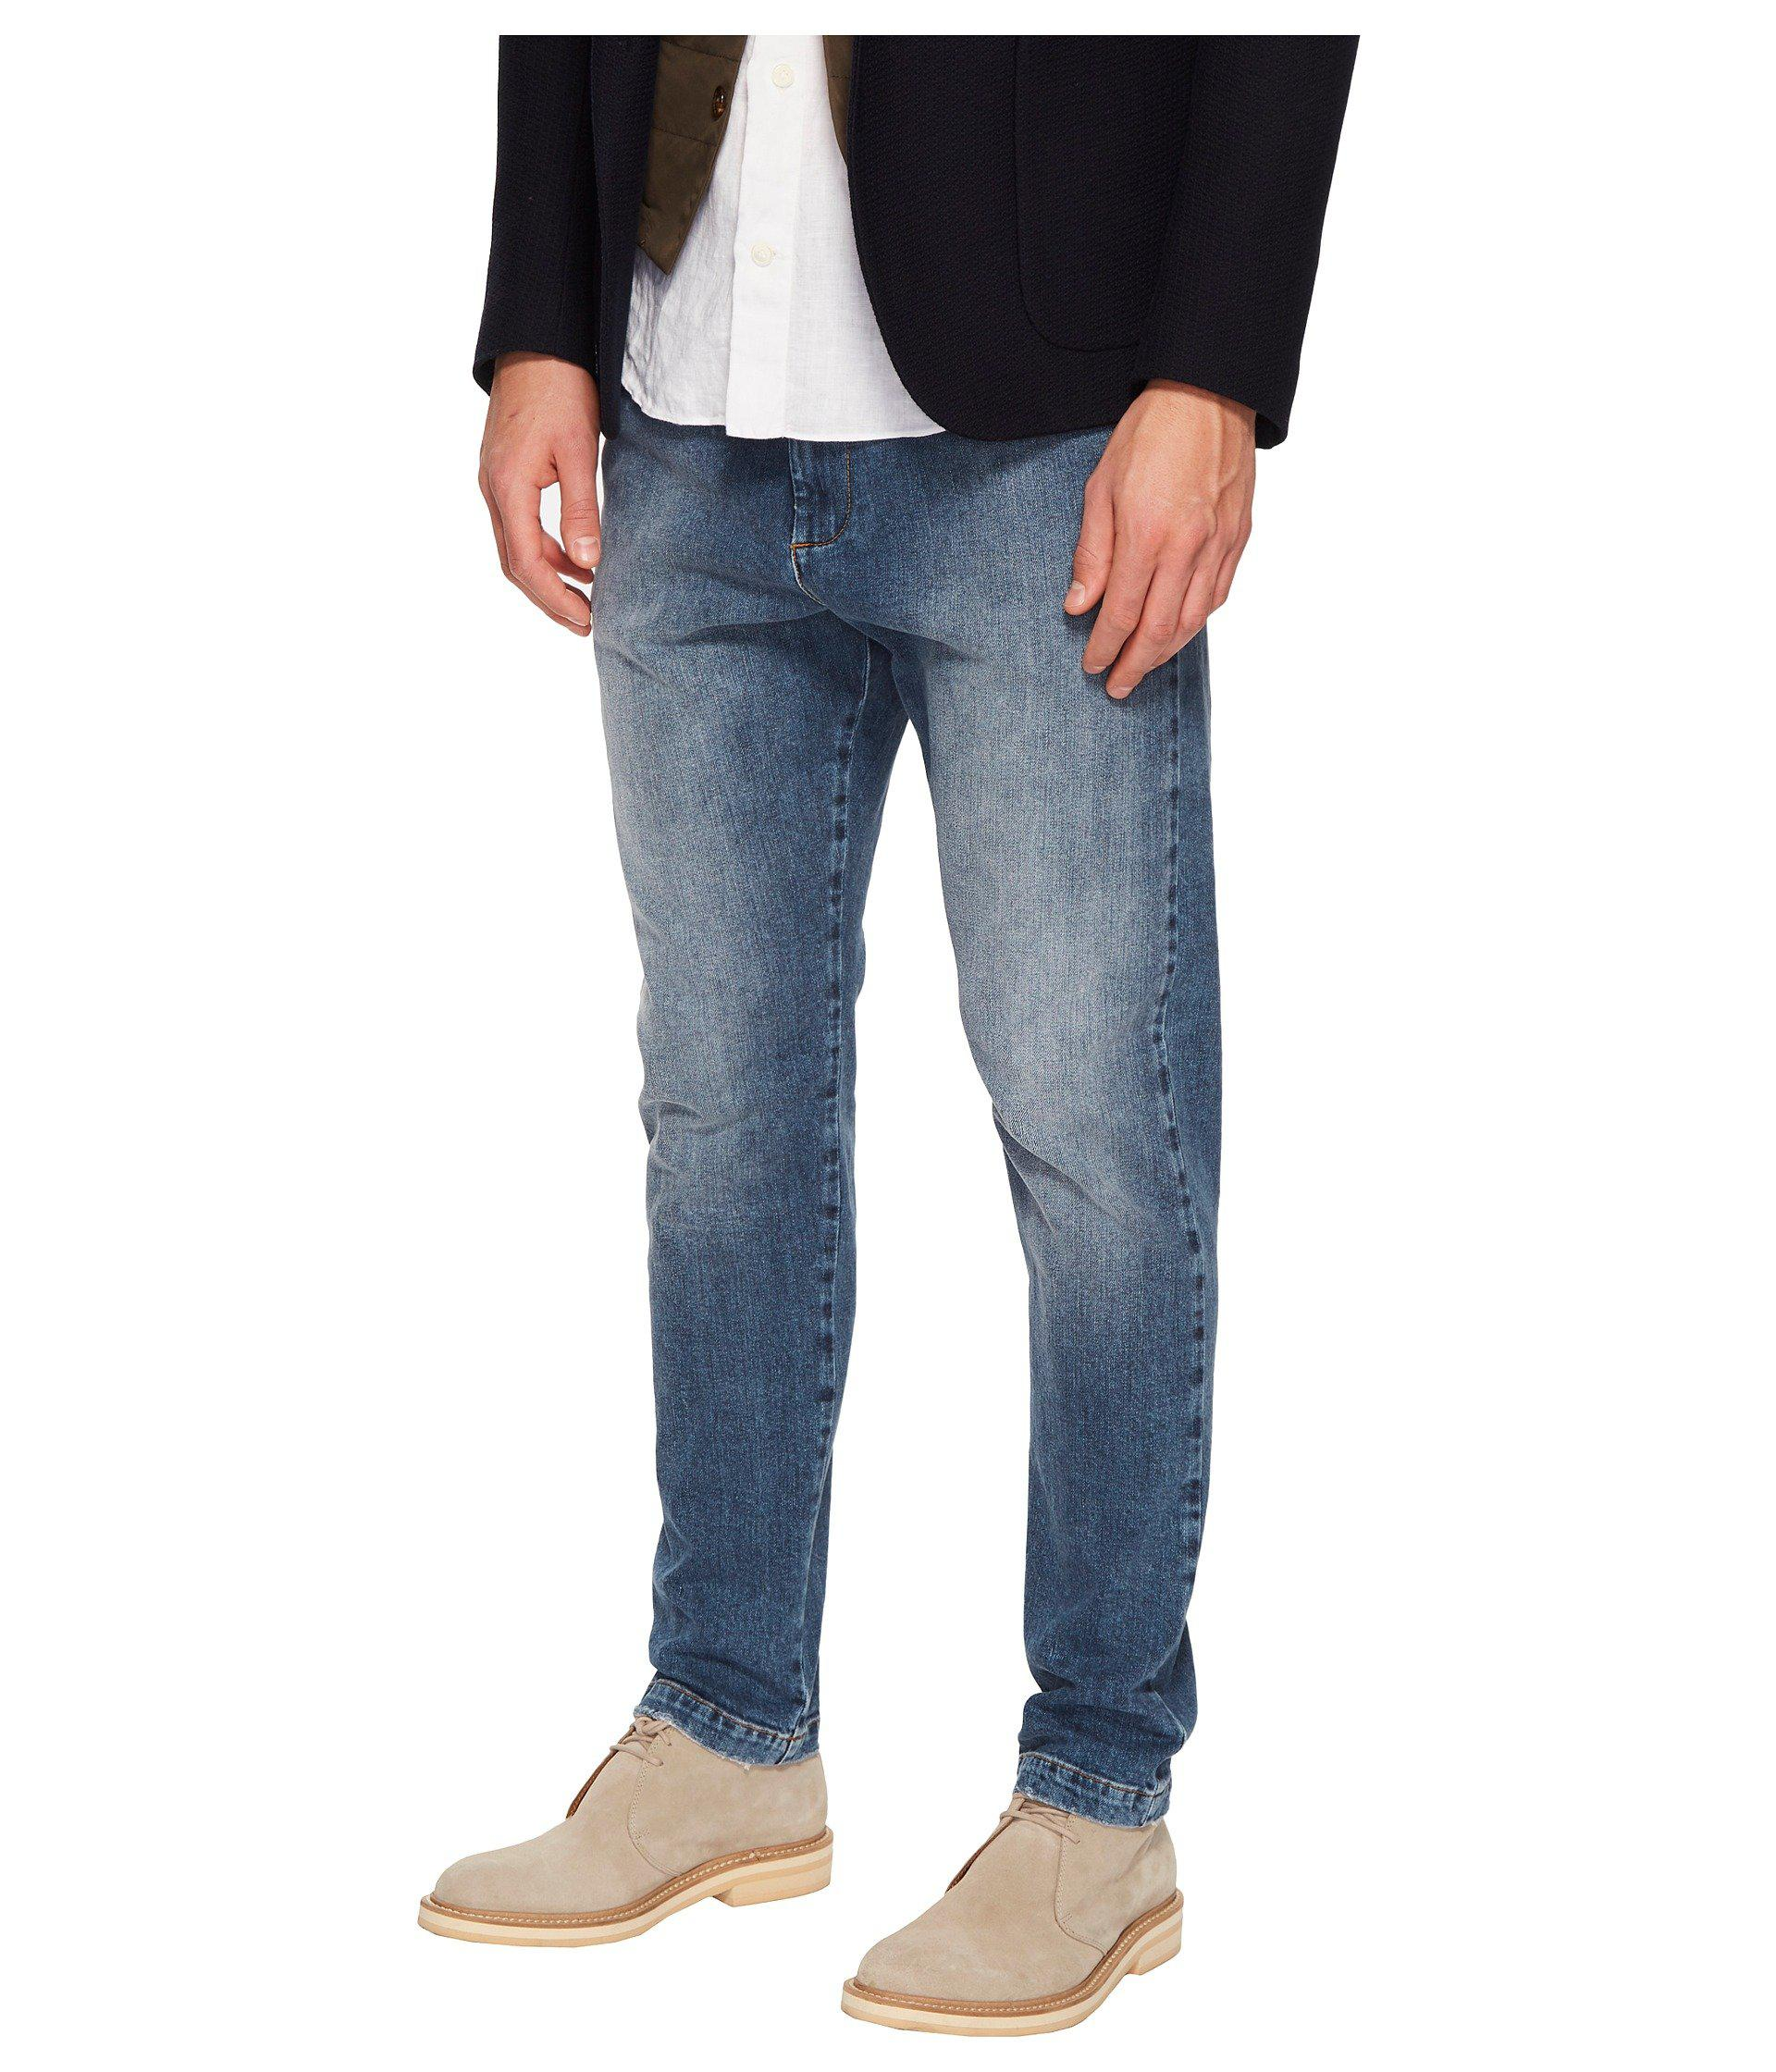 9050735f Lyst - Eleventy Cotton Stretch Jogger Jeans In Denim in Blue for Men